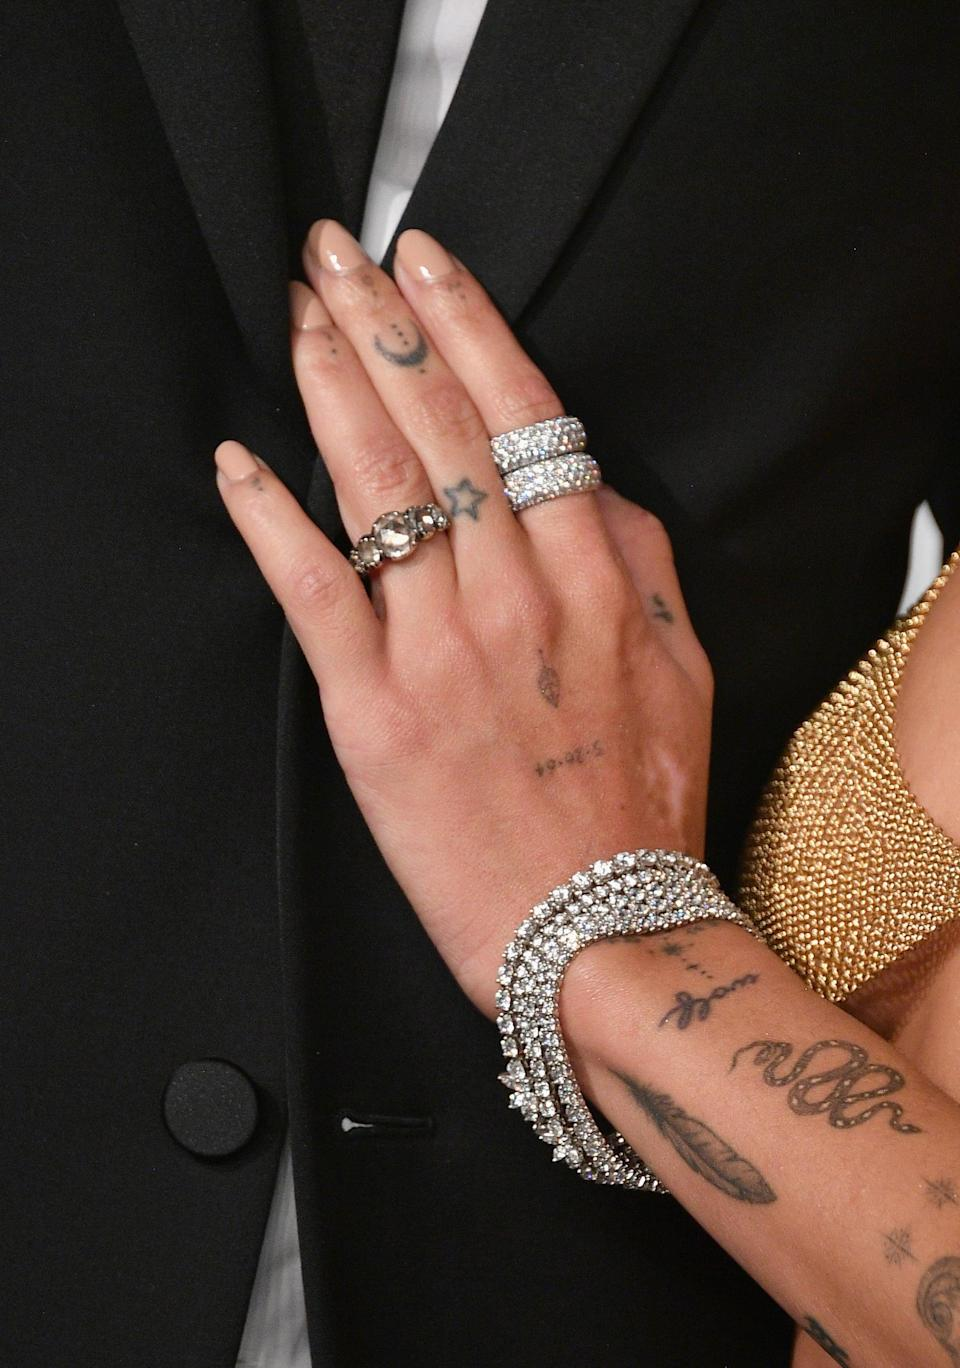 """<p>Starting in 2016, Kravitz added a few more pieces to her left hand, including her father's birthday, 5.26.64, the outline of a star on her middle finger, a red heart on the inside of her middle finger, and the word """"up"""" on the inside of her thumb.</p>"""